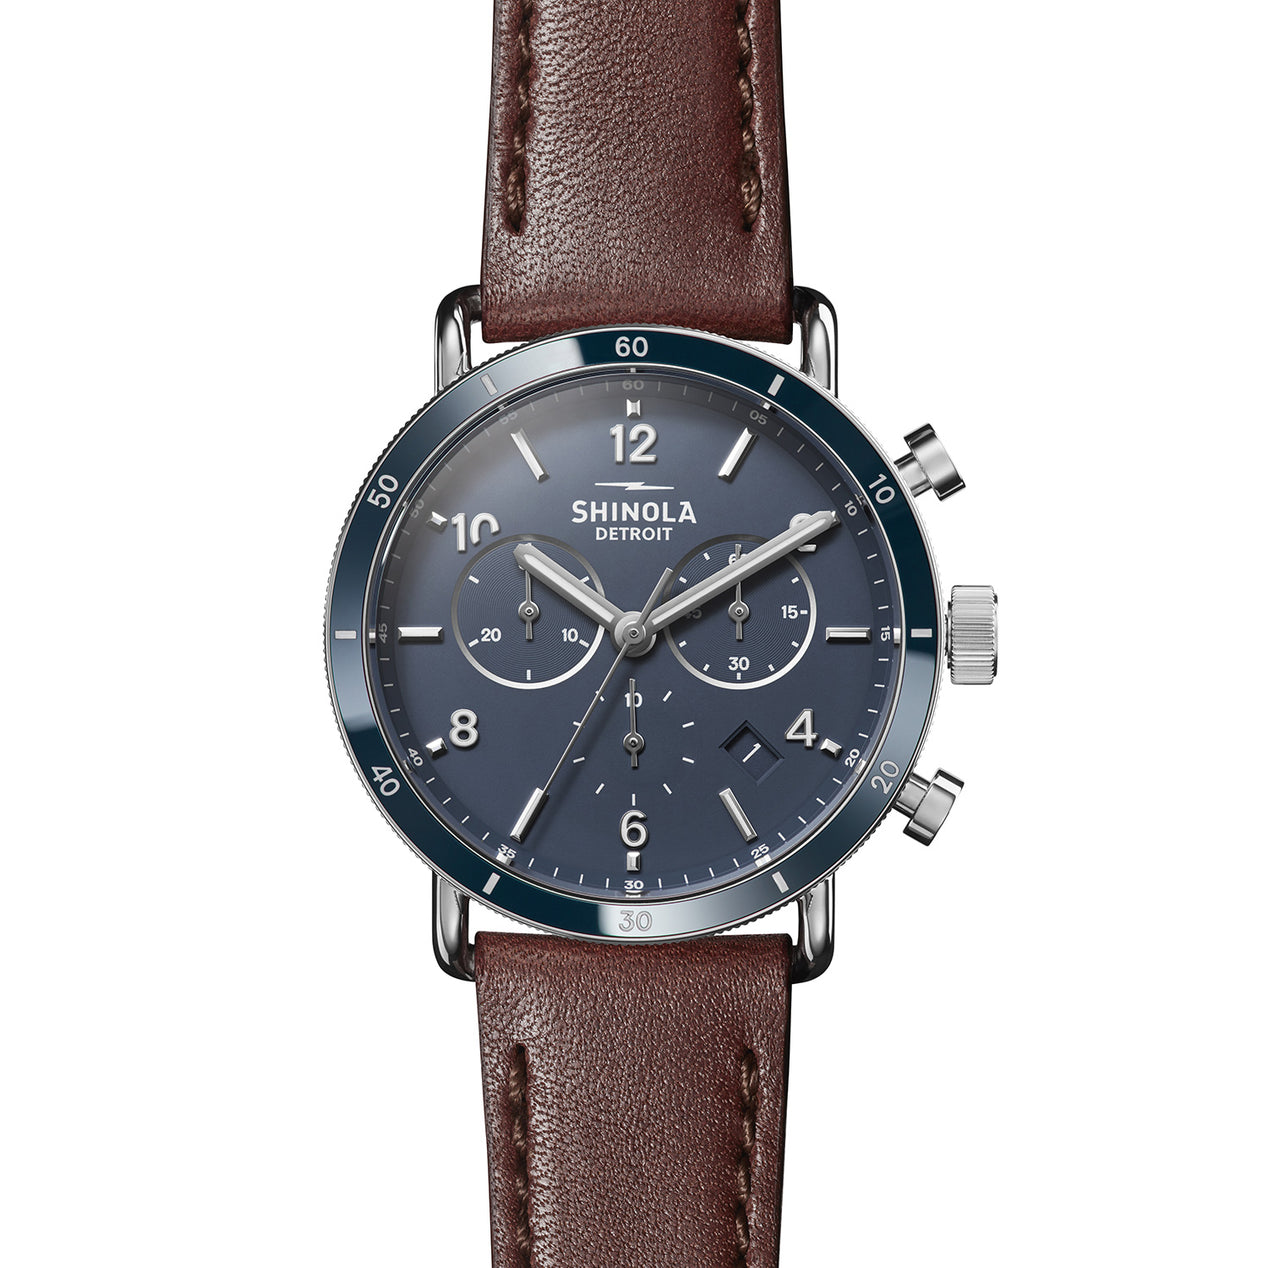 9ec442714 Shinola The Canfield Sport Chrono 40mm - Dark Cognac USA Leather Strap -  Midnight Blue Dial Watch